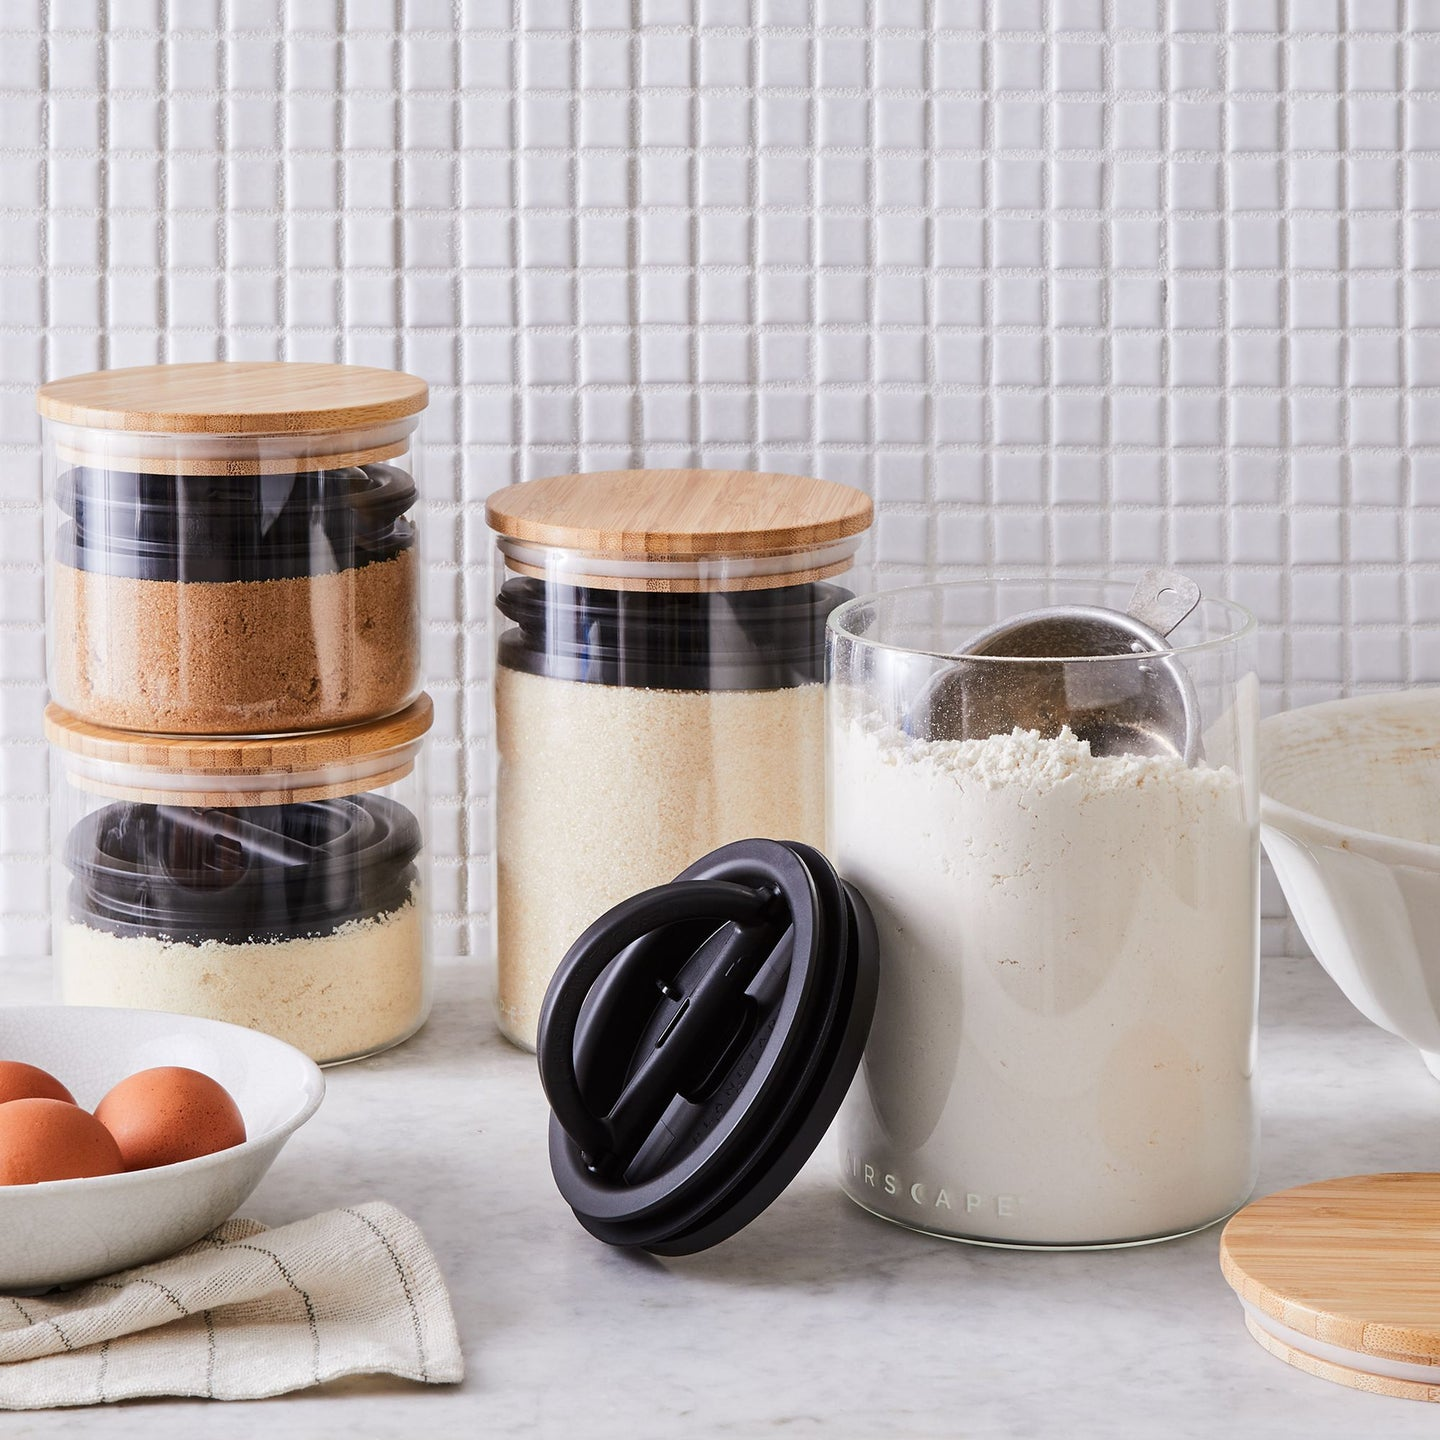 The Best Glass Food Storage Containers for Every Corner of Your Kitchen